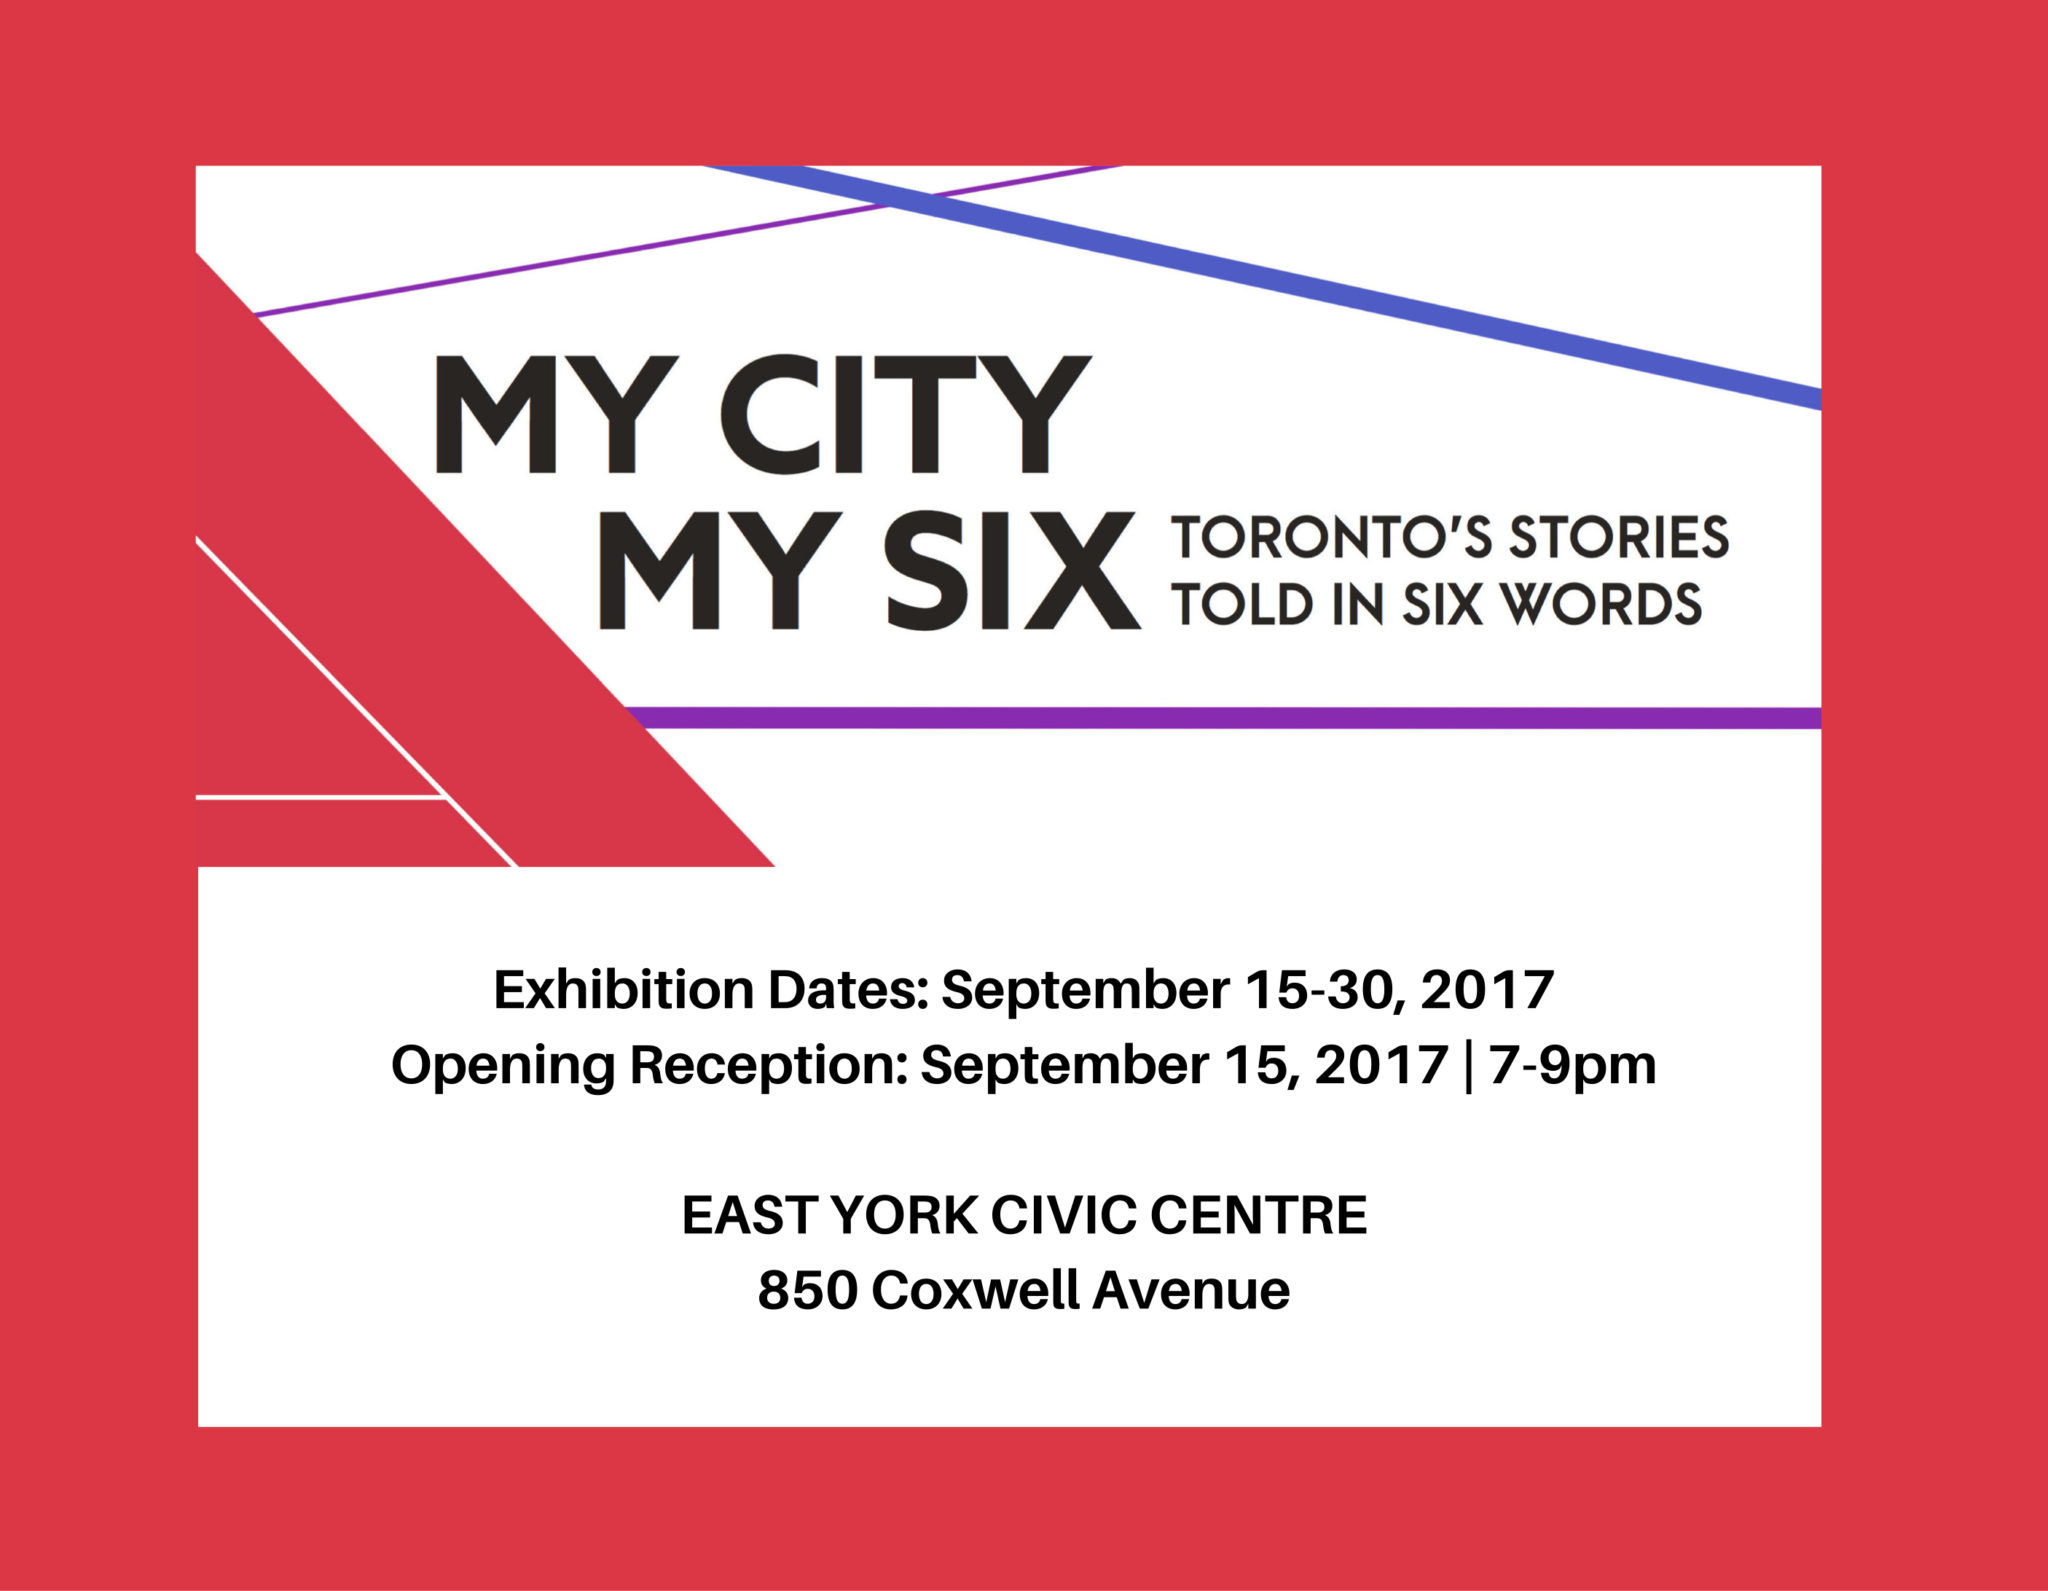 My City My Six Exhibition